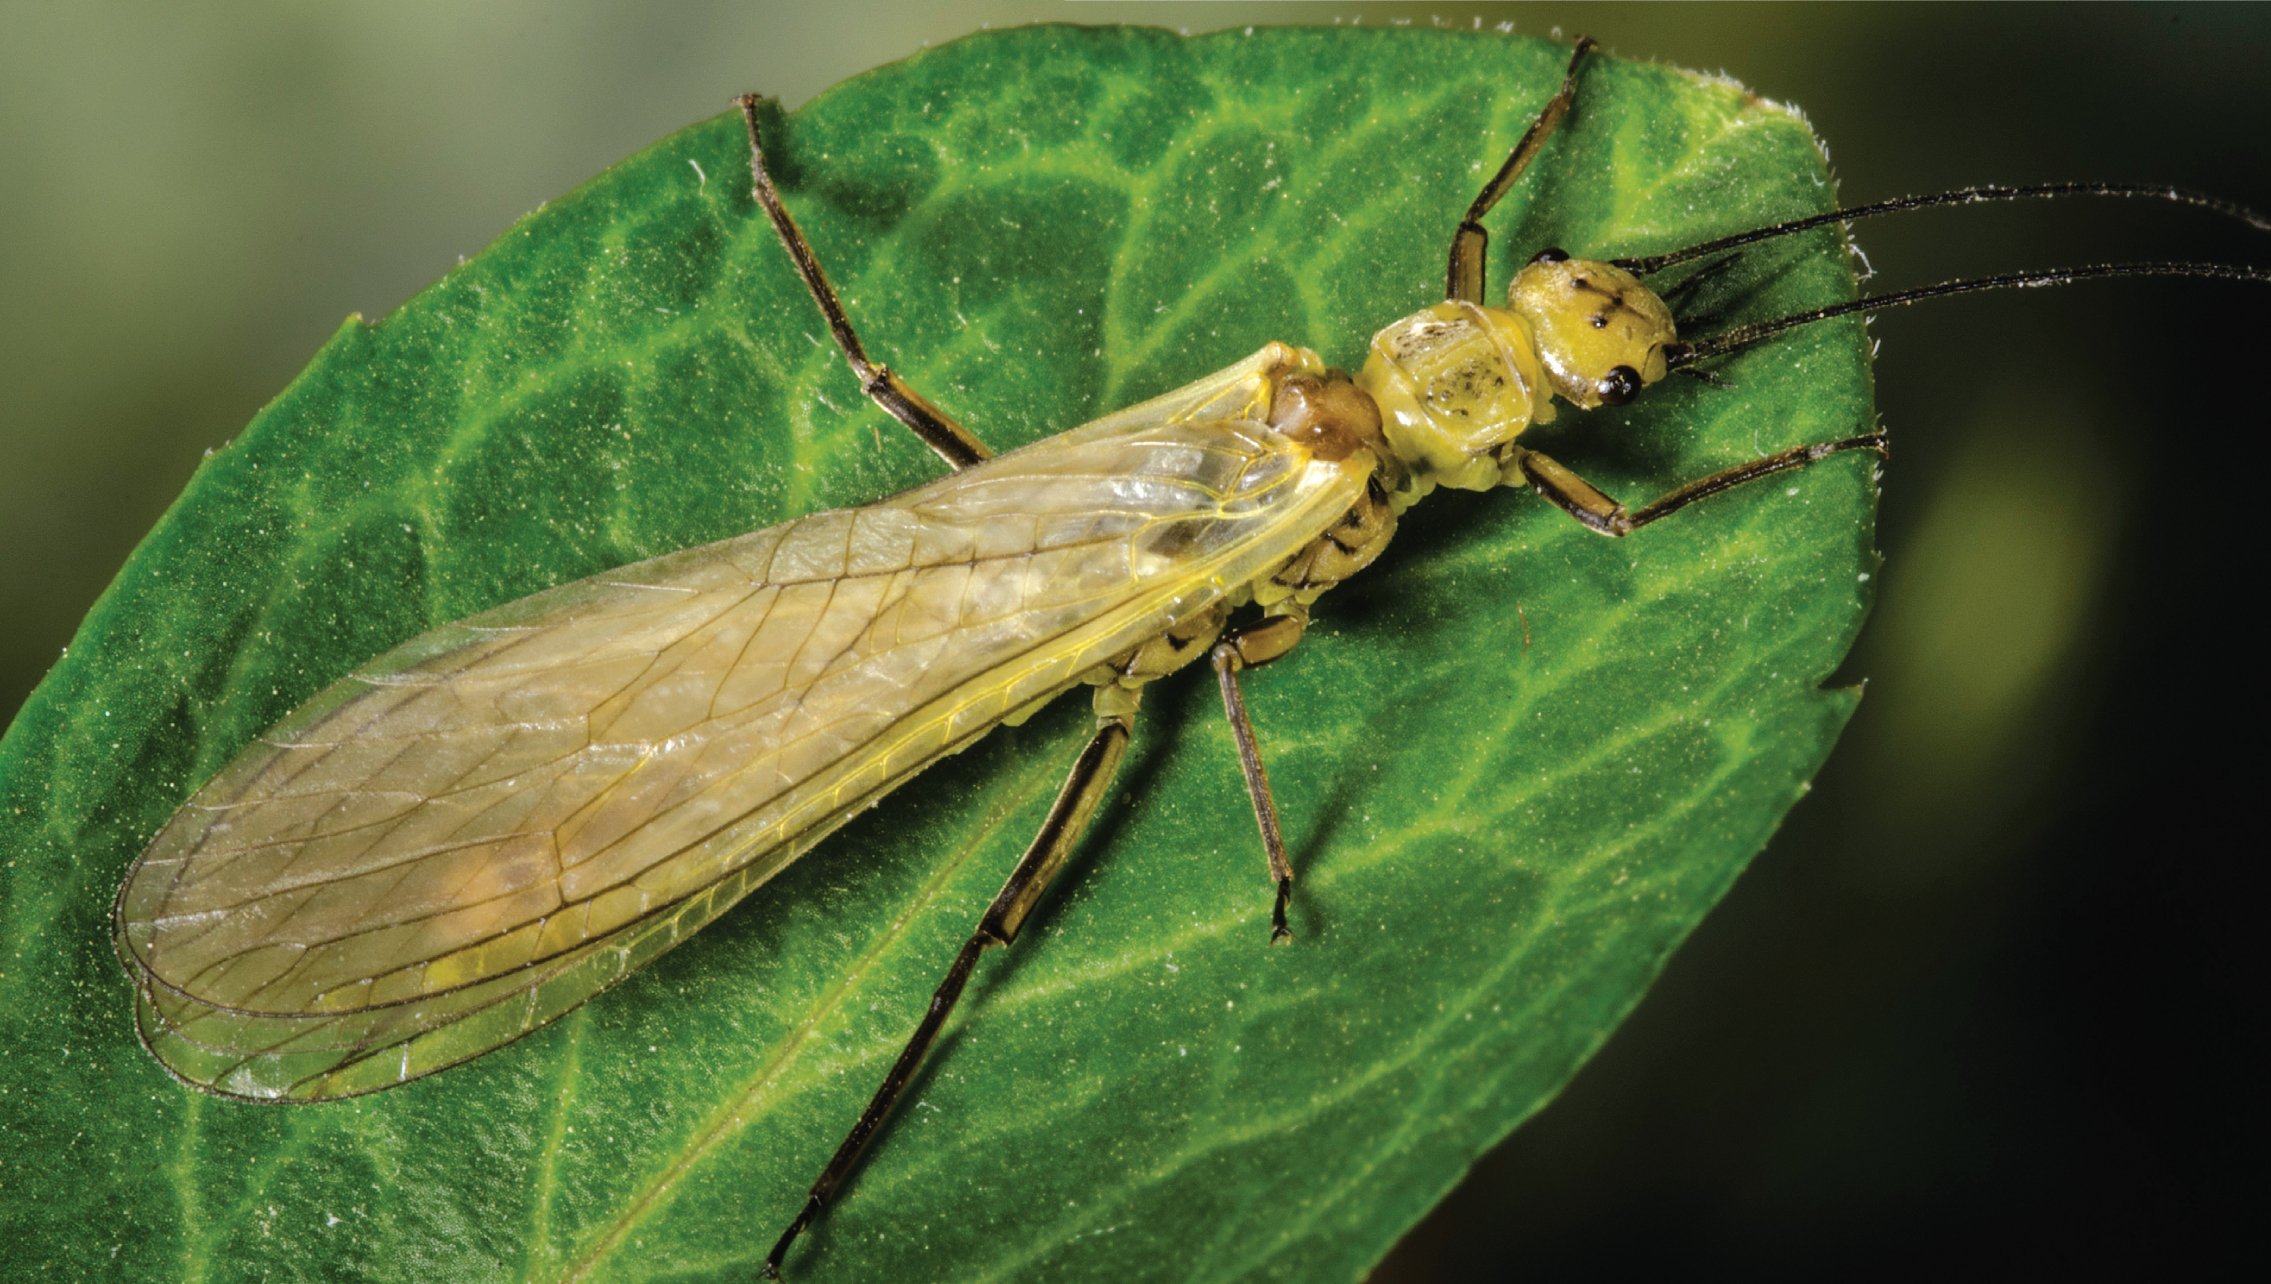 The bodies of yellow sally females can reach up to 14 millimeters long; the males are a little shorter. These insects have two tails and two long antennae. When not in flight, their wings fold over the tops of their abdomens.